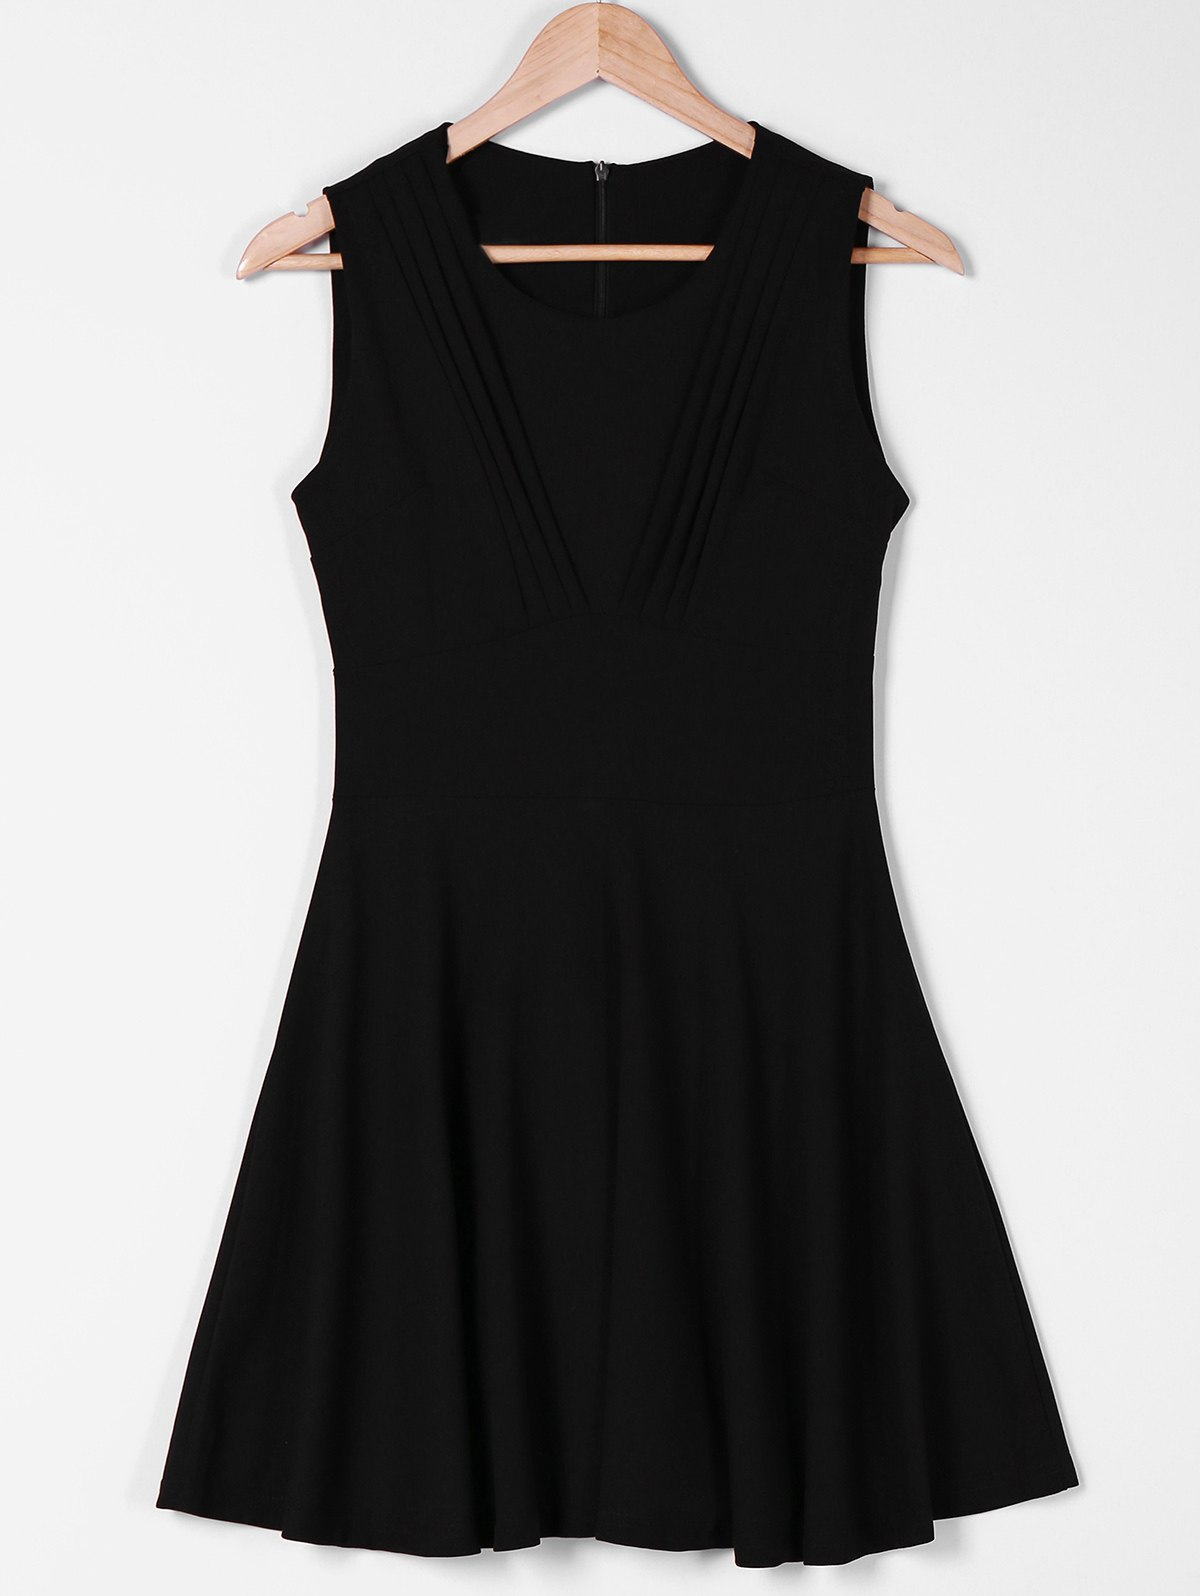 Trendy Round Neck Sleeveless Pure Color Pleated Dress For Women цена